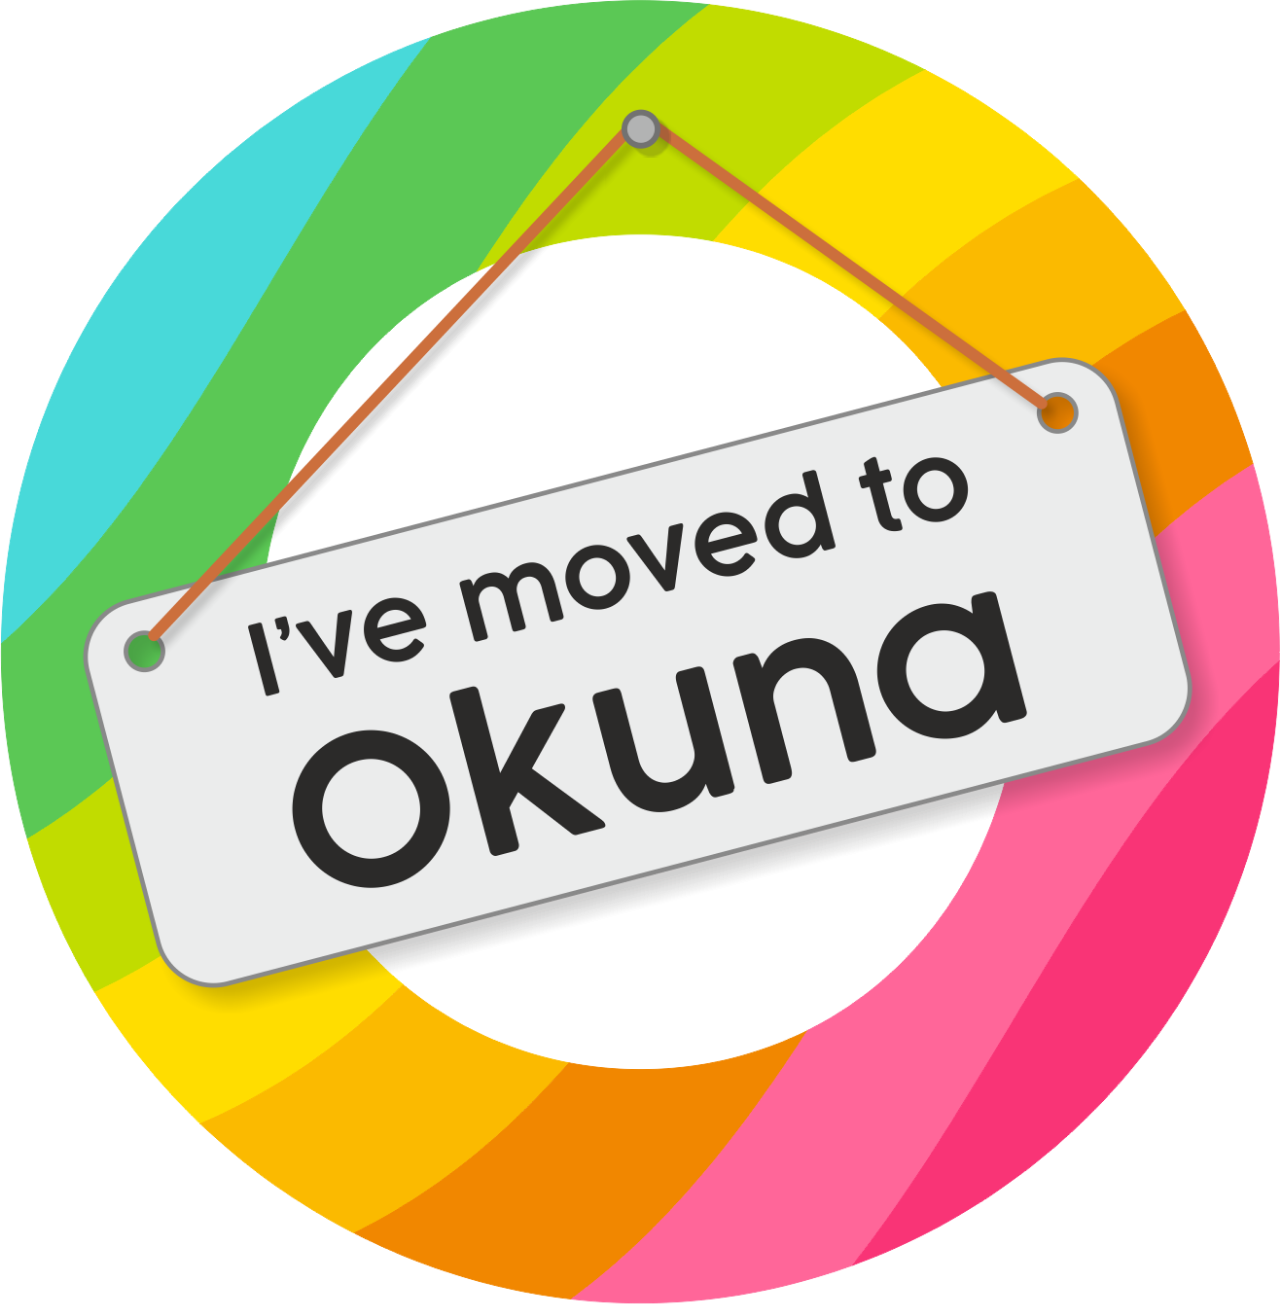 Moved to Okuna